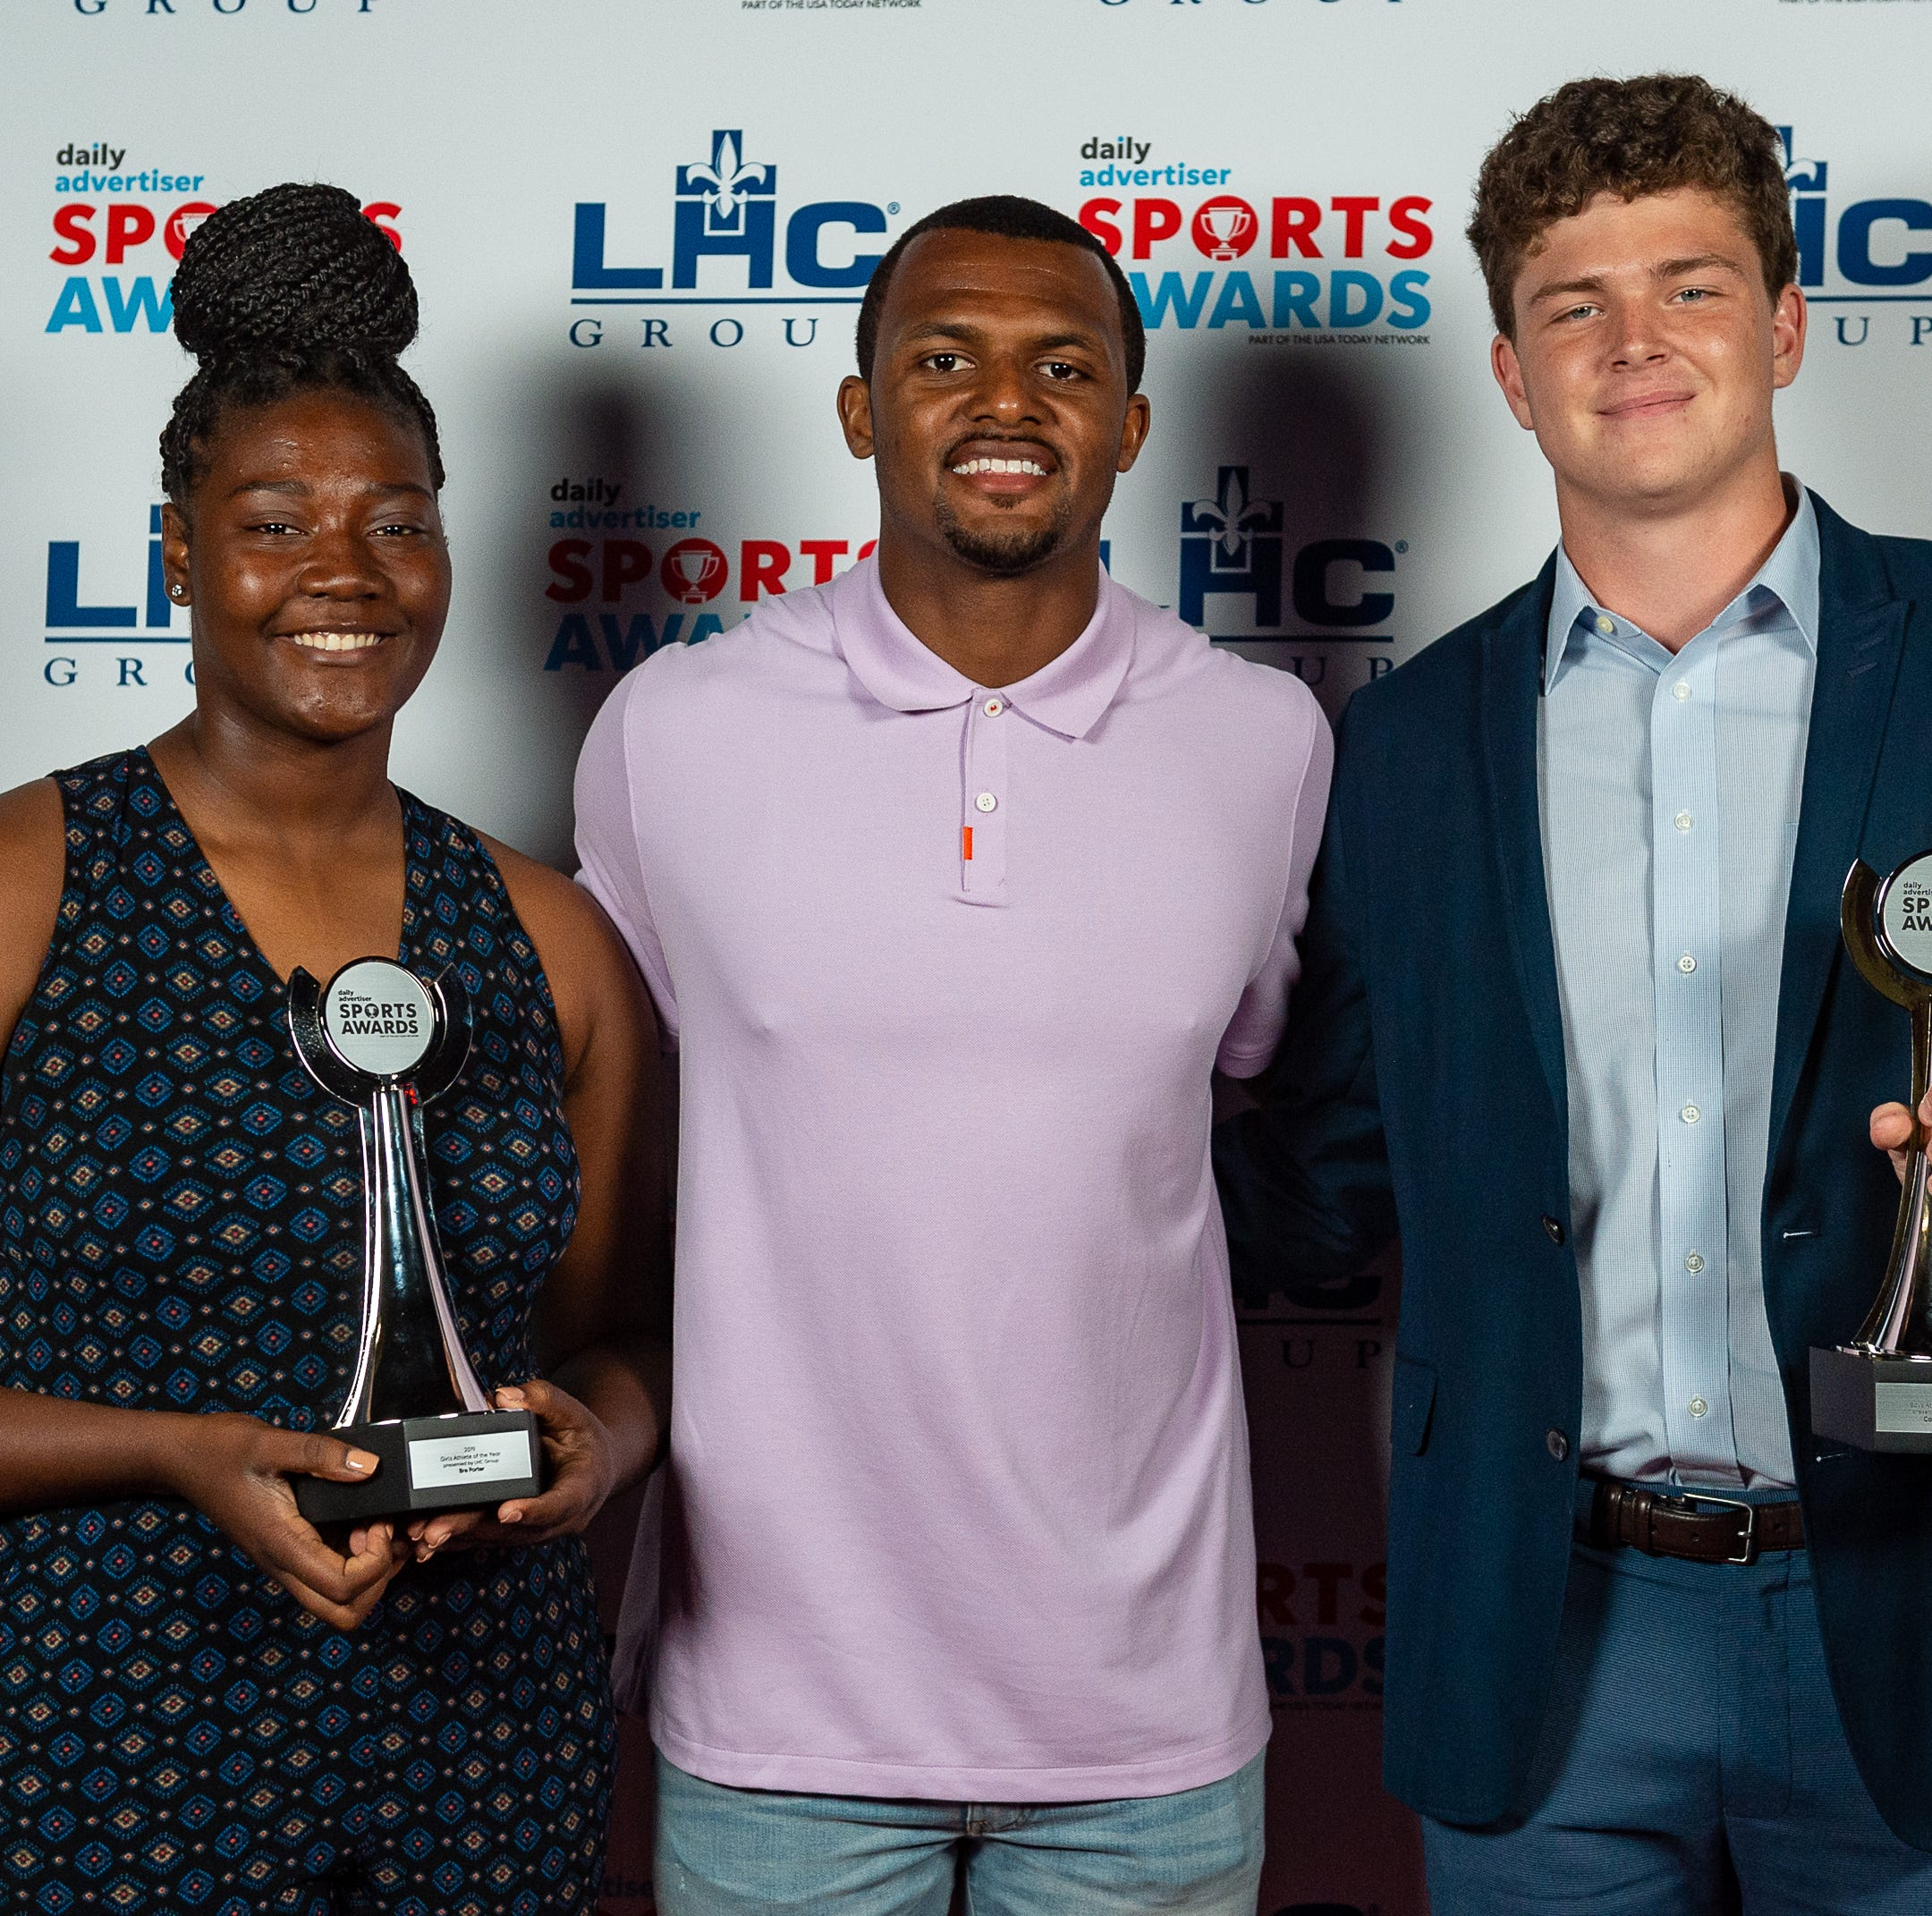 Daily Advertiser Sports Awards celebrates area's best high school athletes